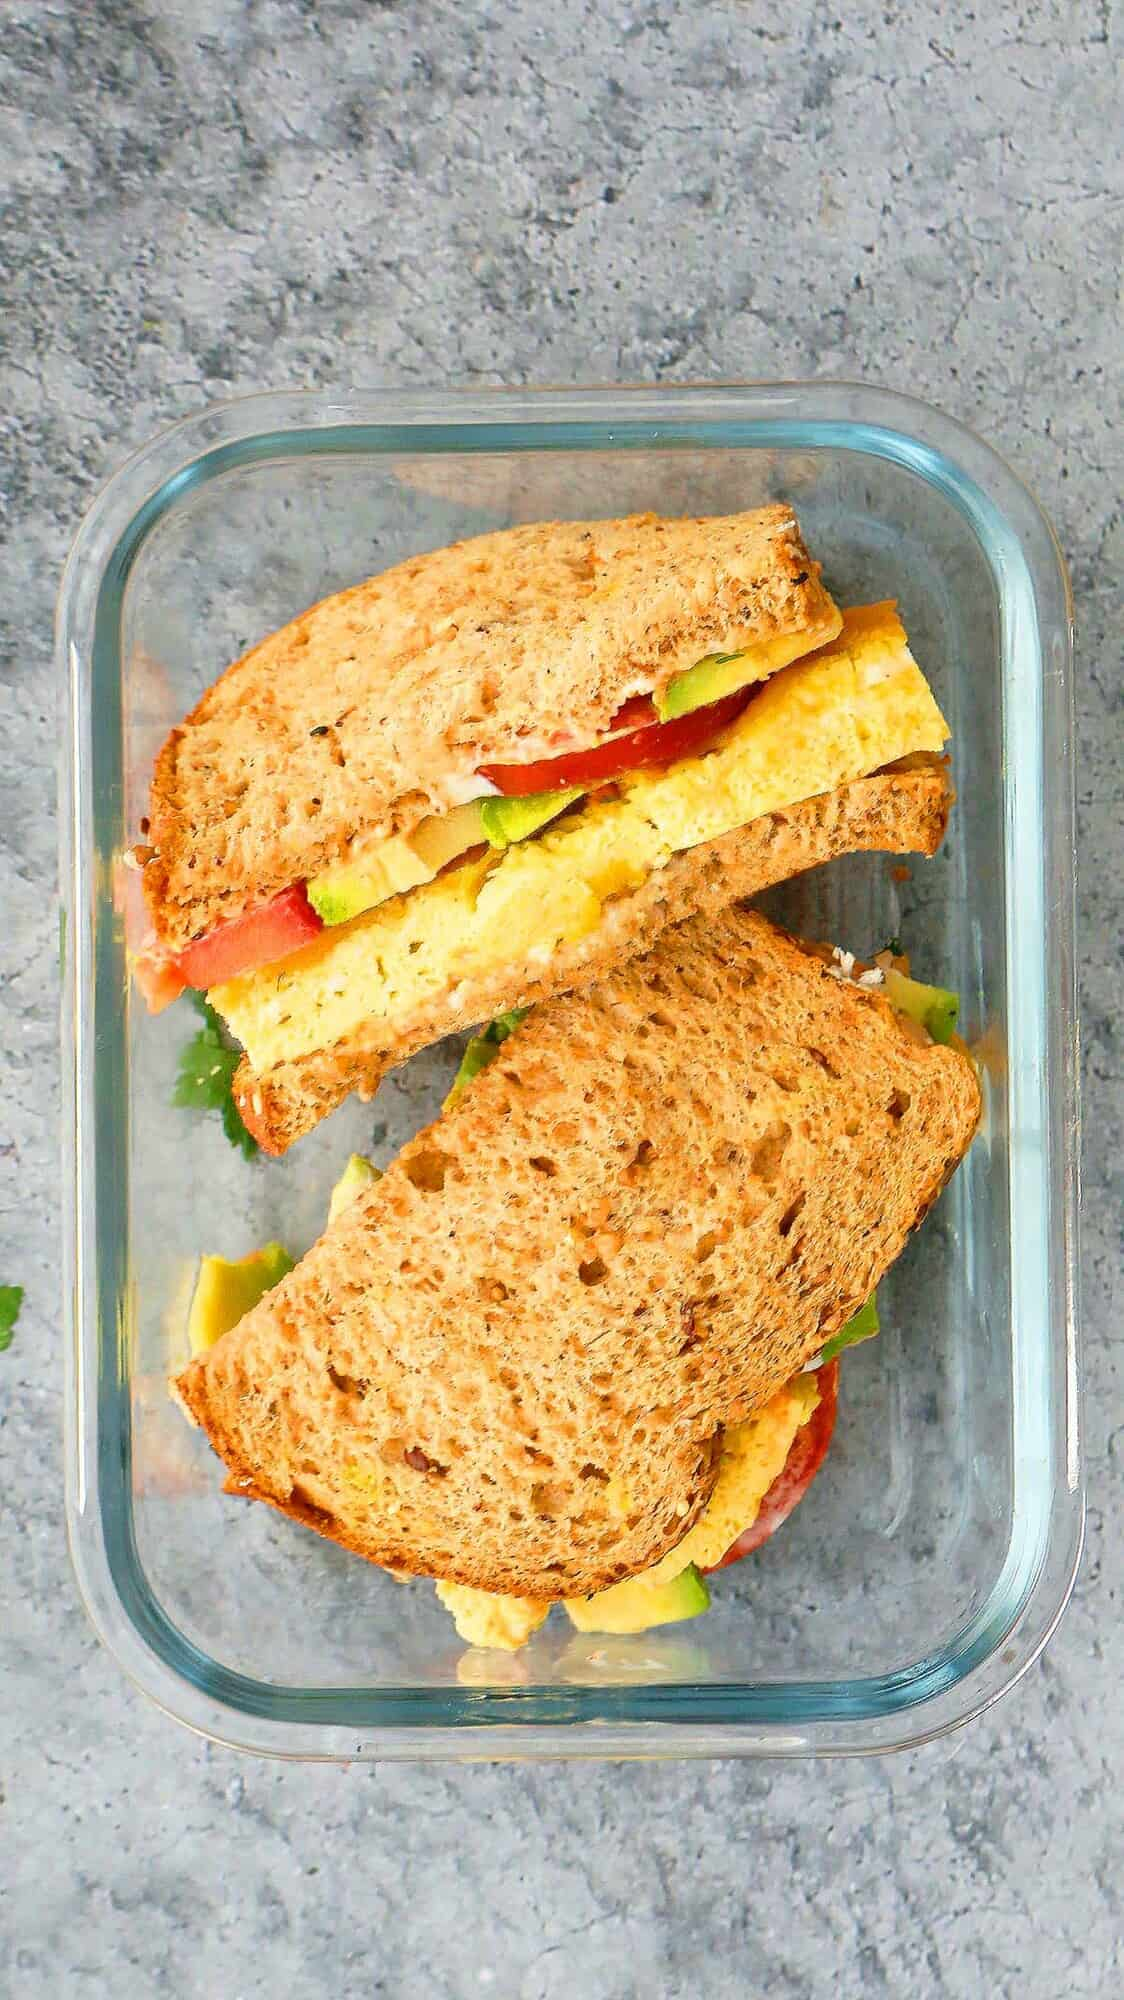 egg omelette sandwich with avocado in lunch box